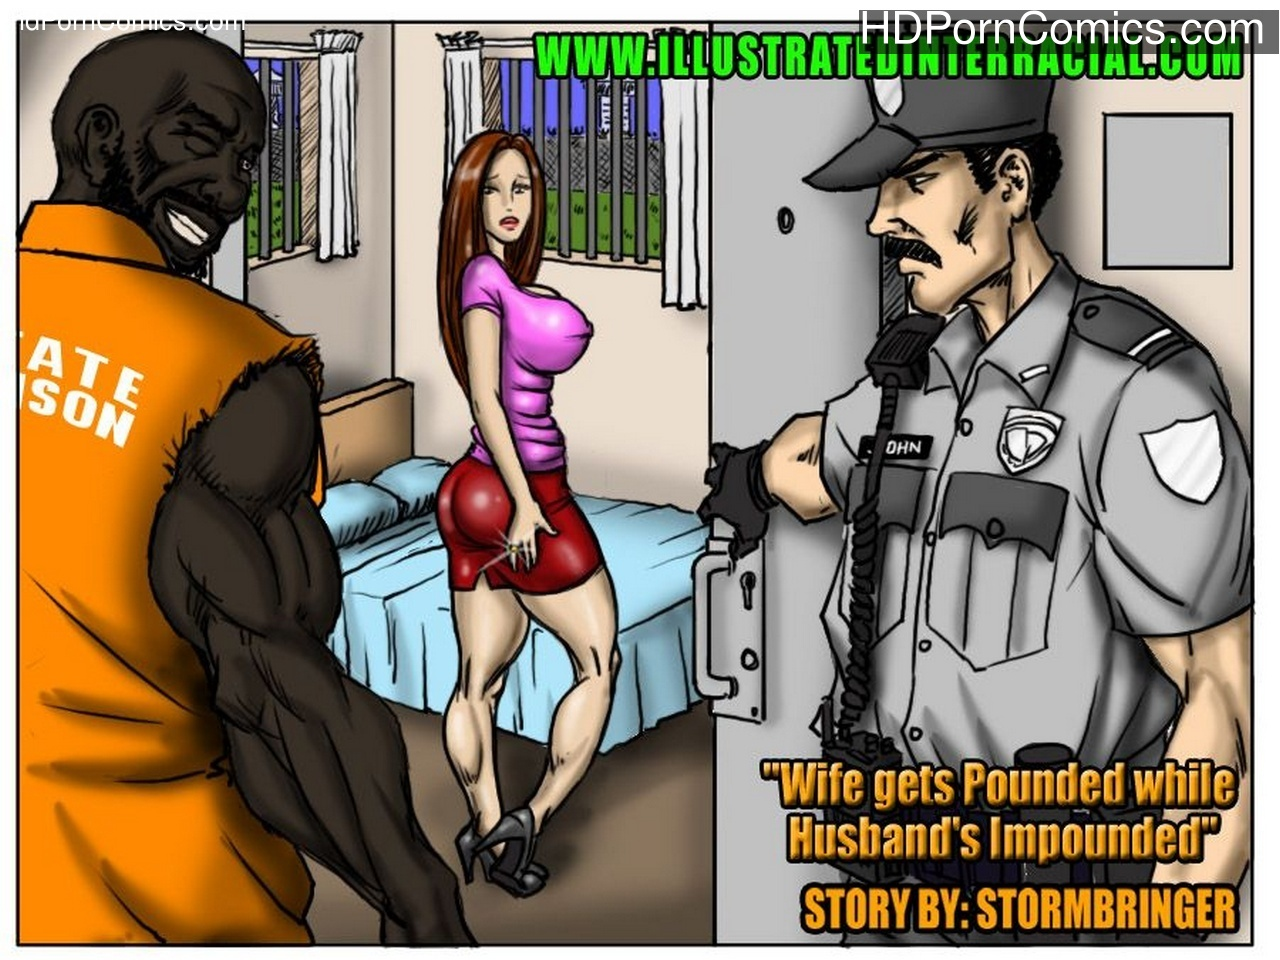 Wife-Gets-Pounded-While-Husband-s-Impounded1 free sex comic